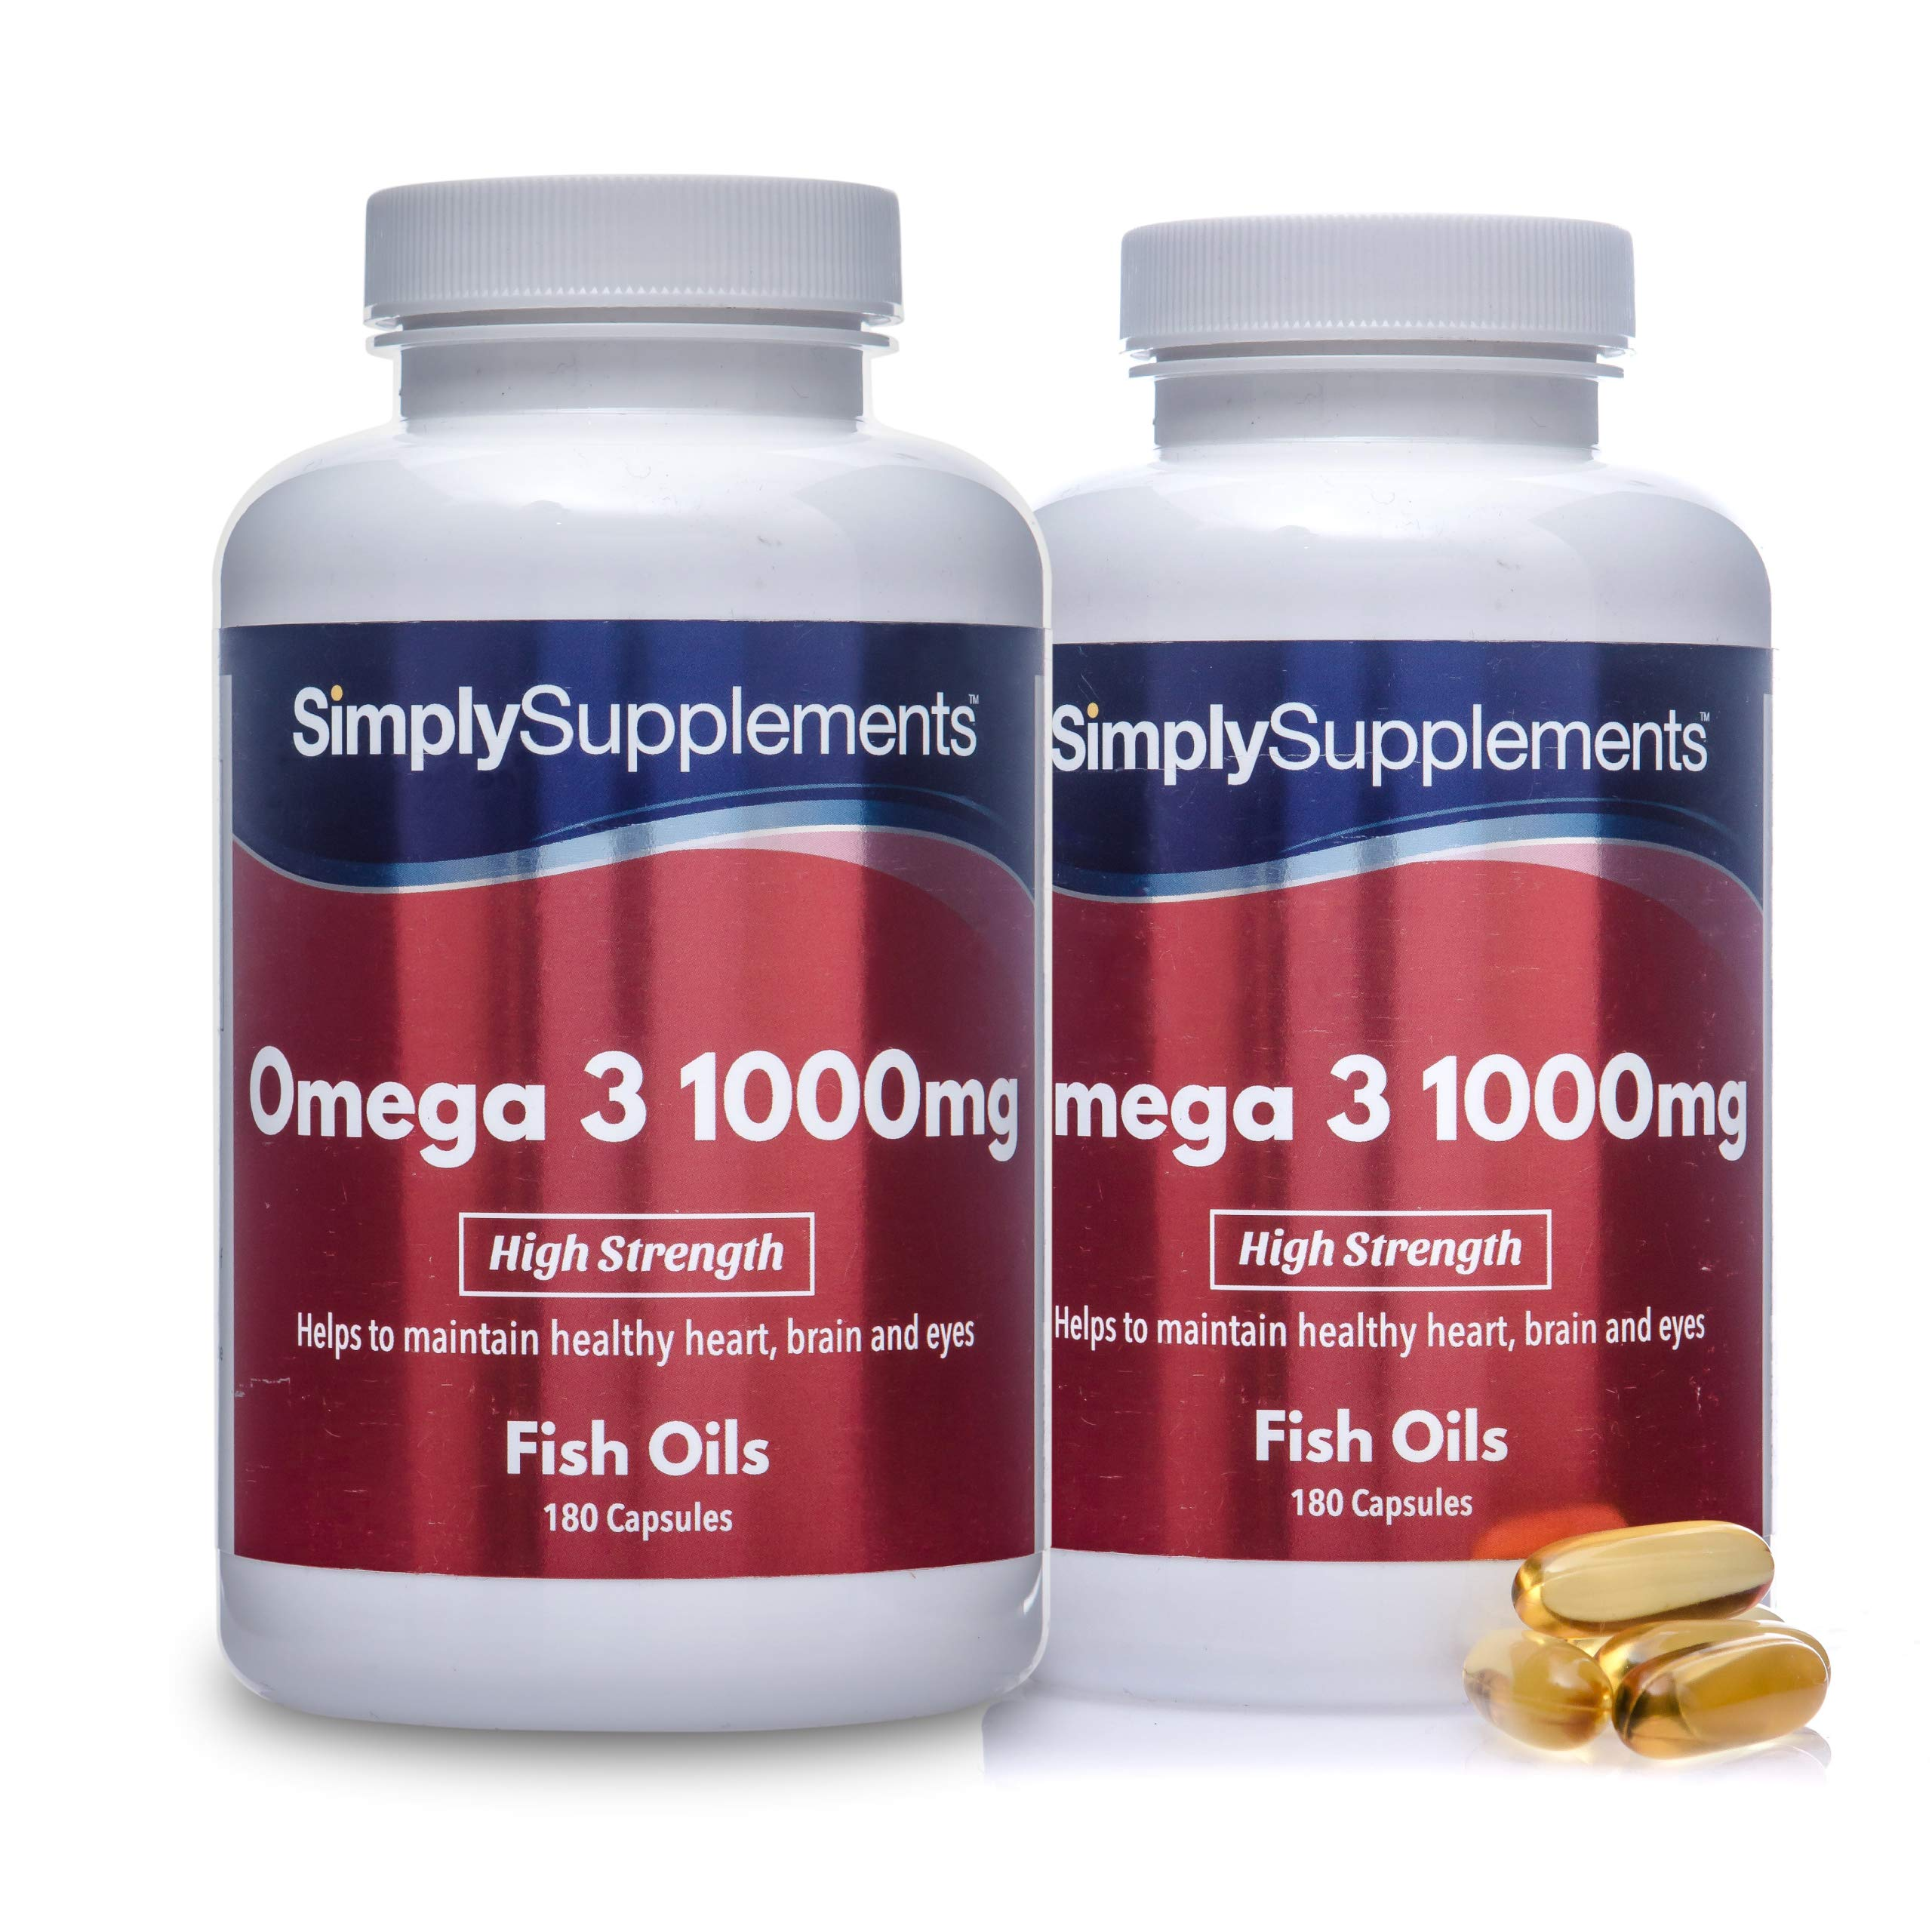 Omega 3 Fish Oil 1000mg Capsules   360 Capsules = Up to 1 Year Supply   Providing EPA & DHA   Manufactured in The UK